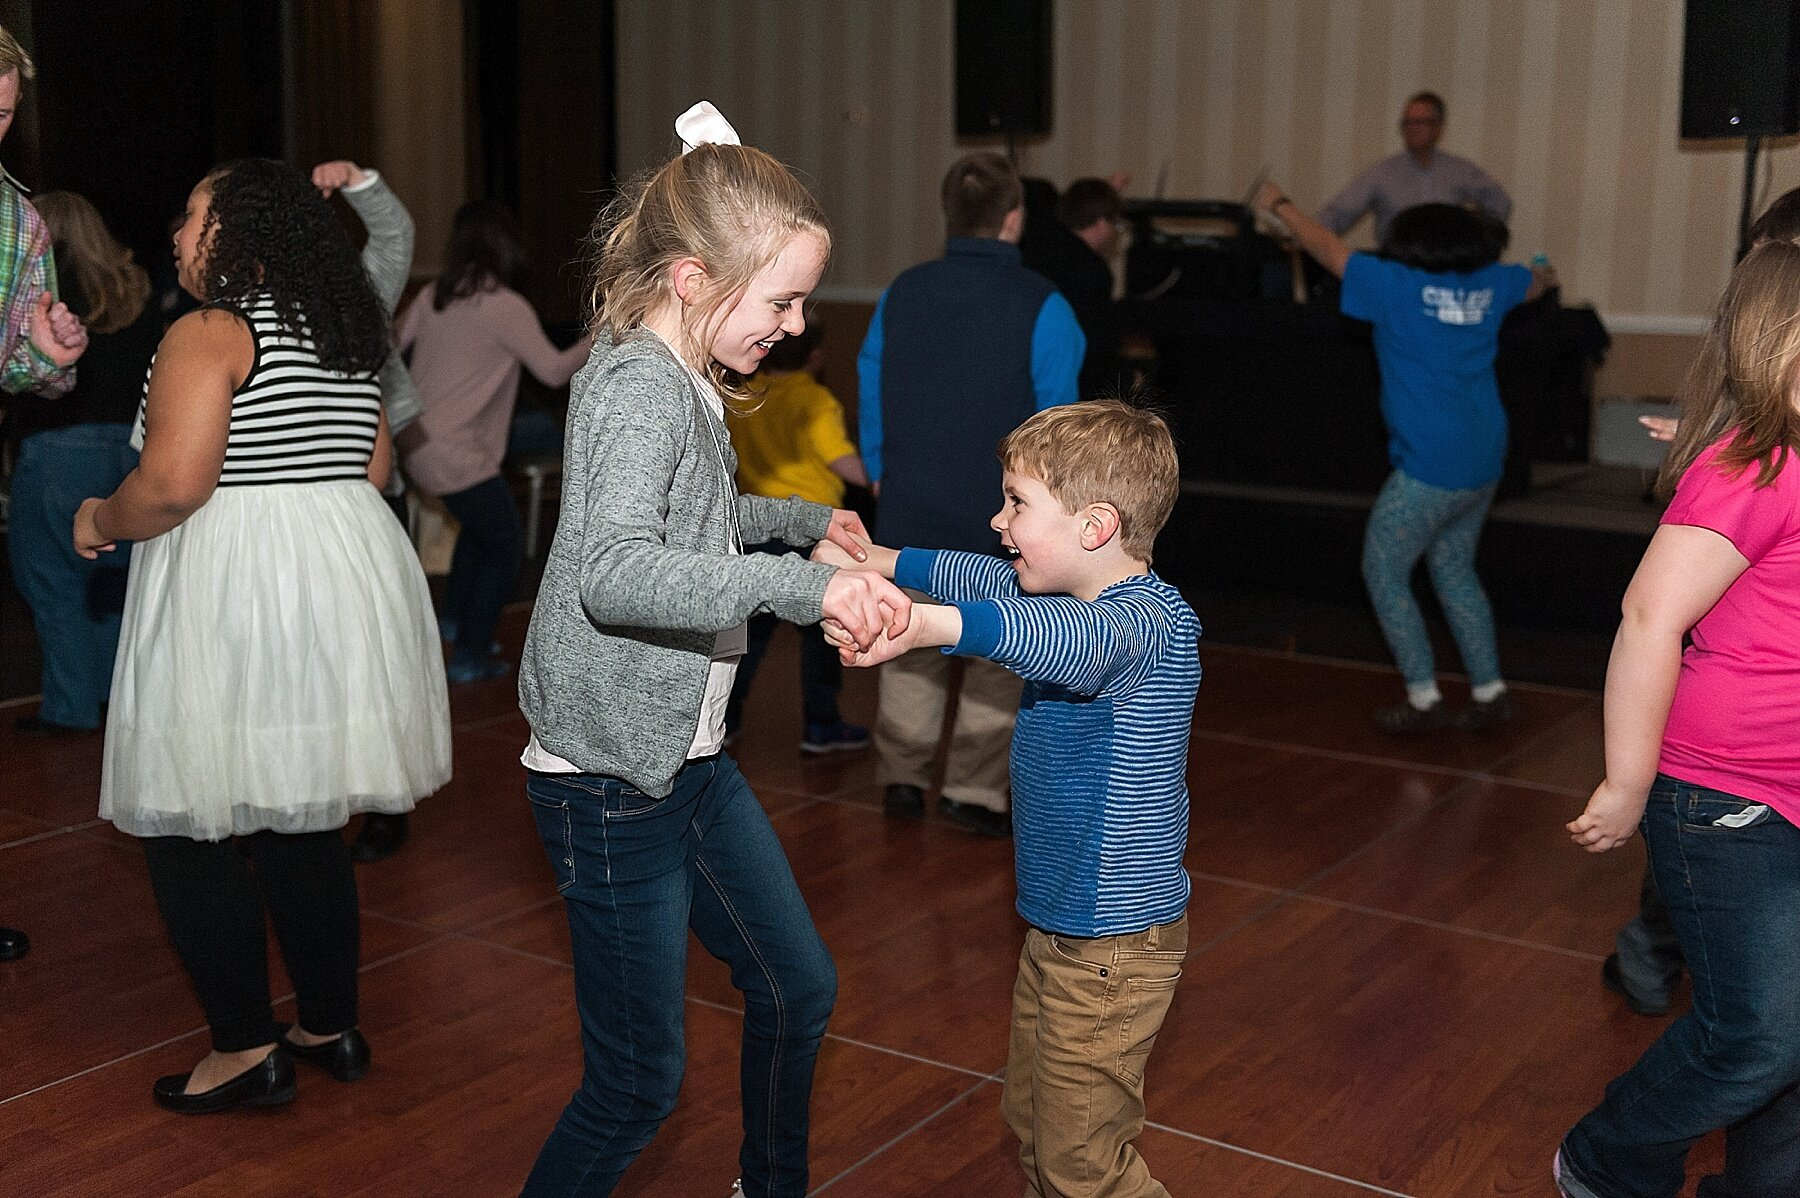 Wendy Zook Photography | NDSS Events, NDSS Buddy Walk on Washington 2019, Washington DC, Down Syndrome Advocacy, Down Syndrome advocate, National Down Syndrome Society, Washington DC